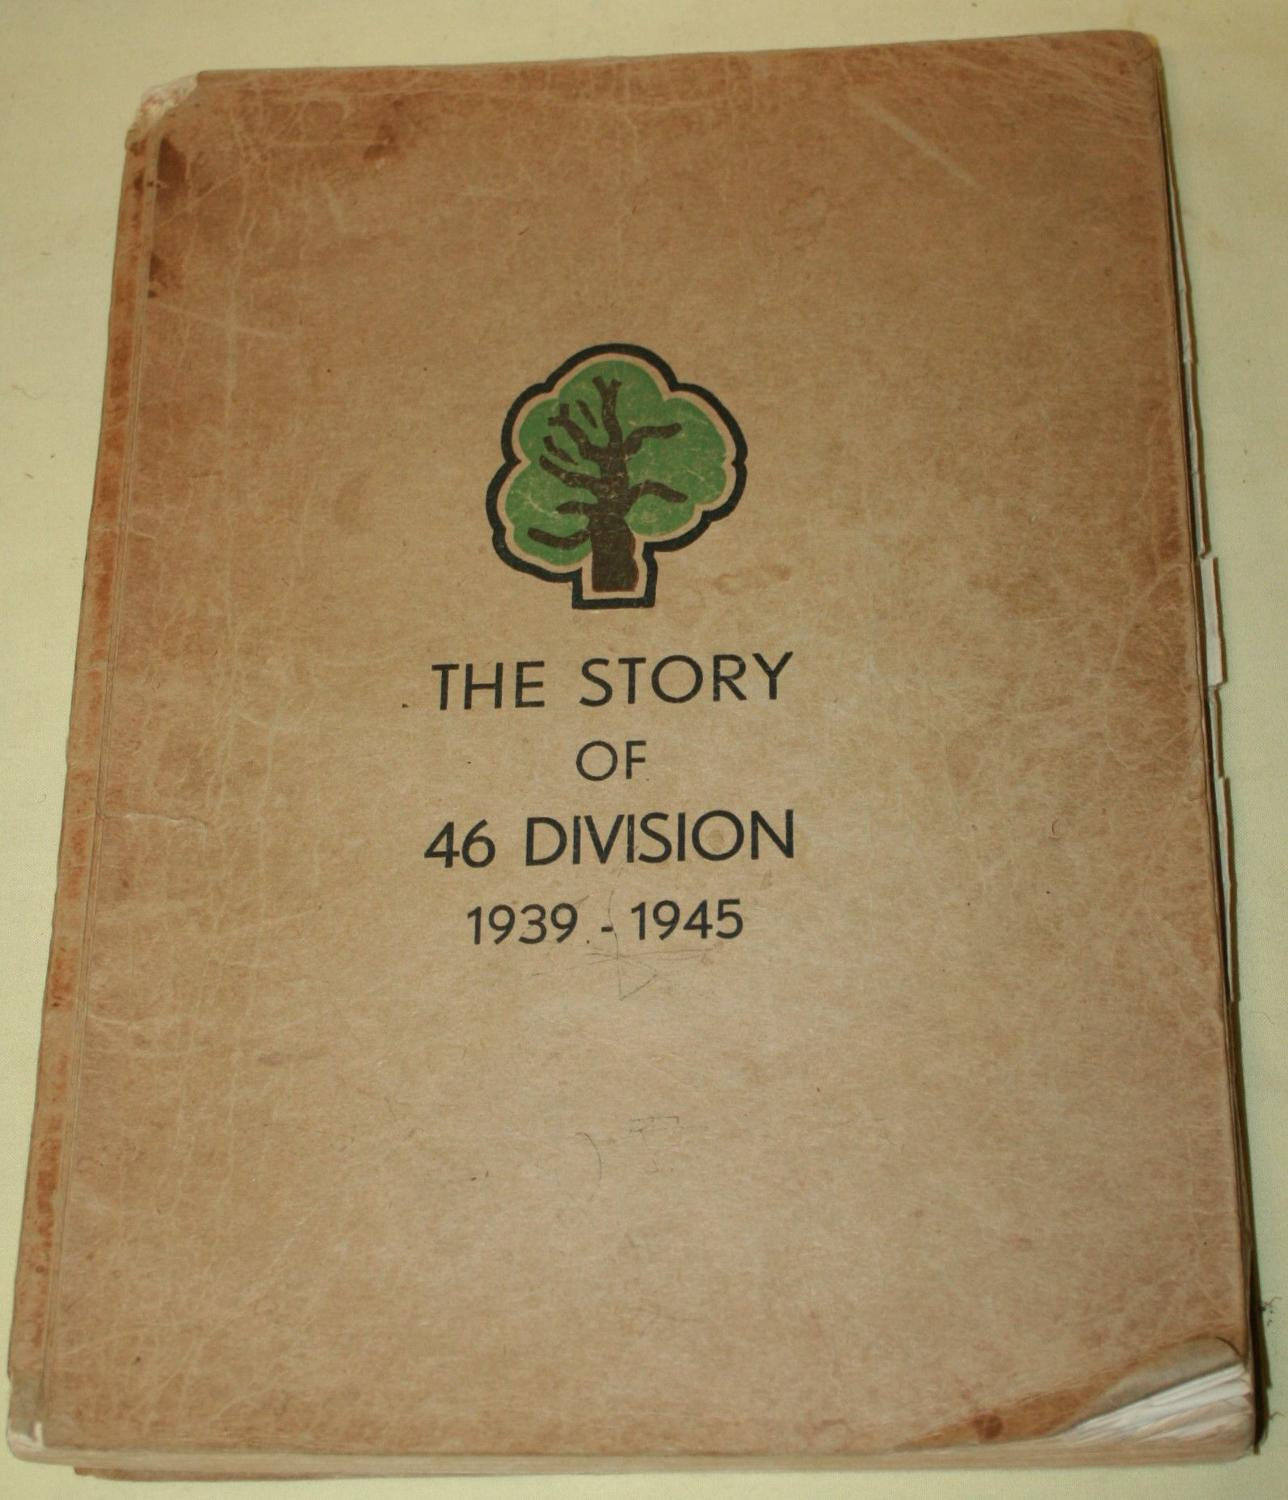 A HISTORY OF THE 46TH DIVISION